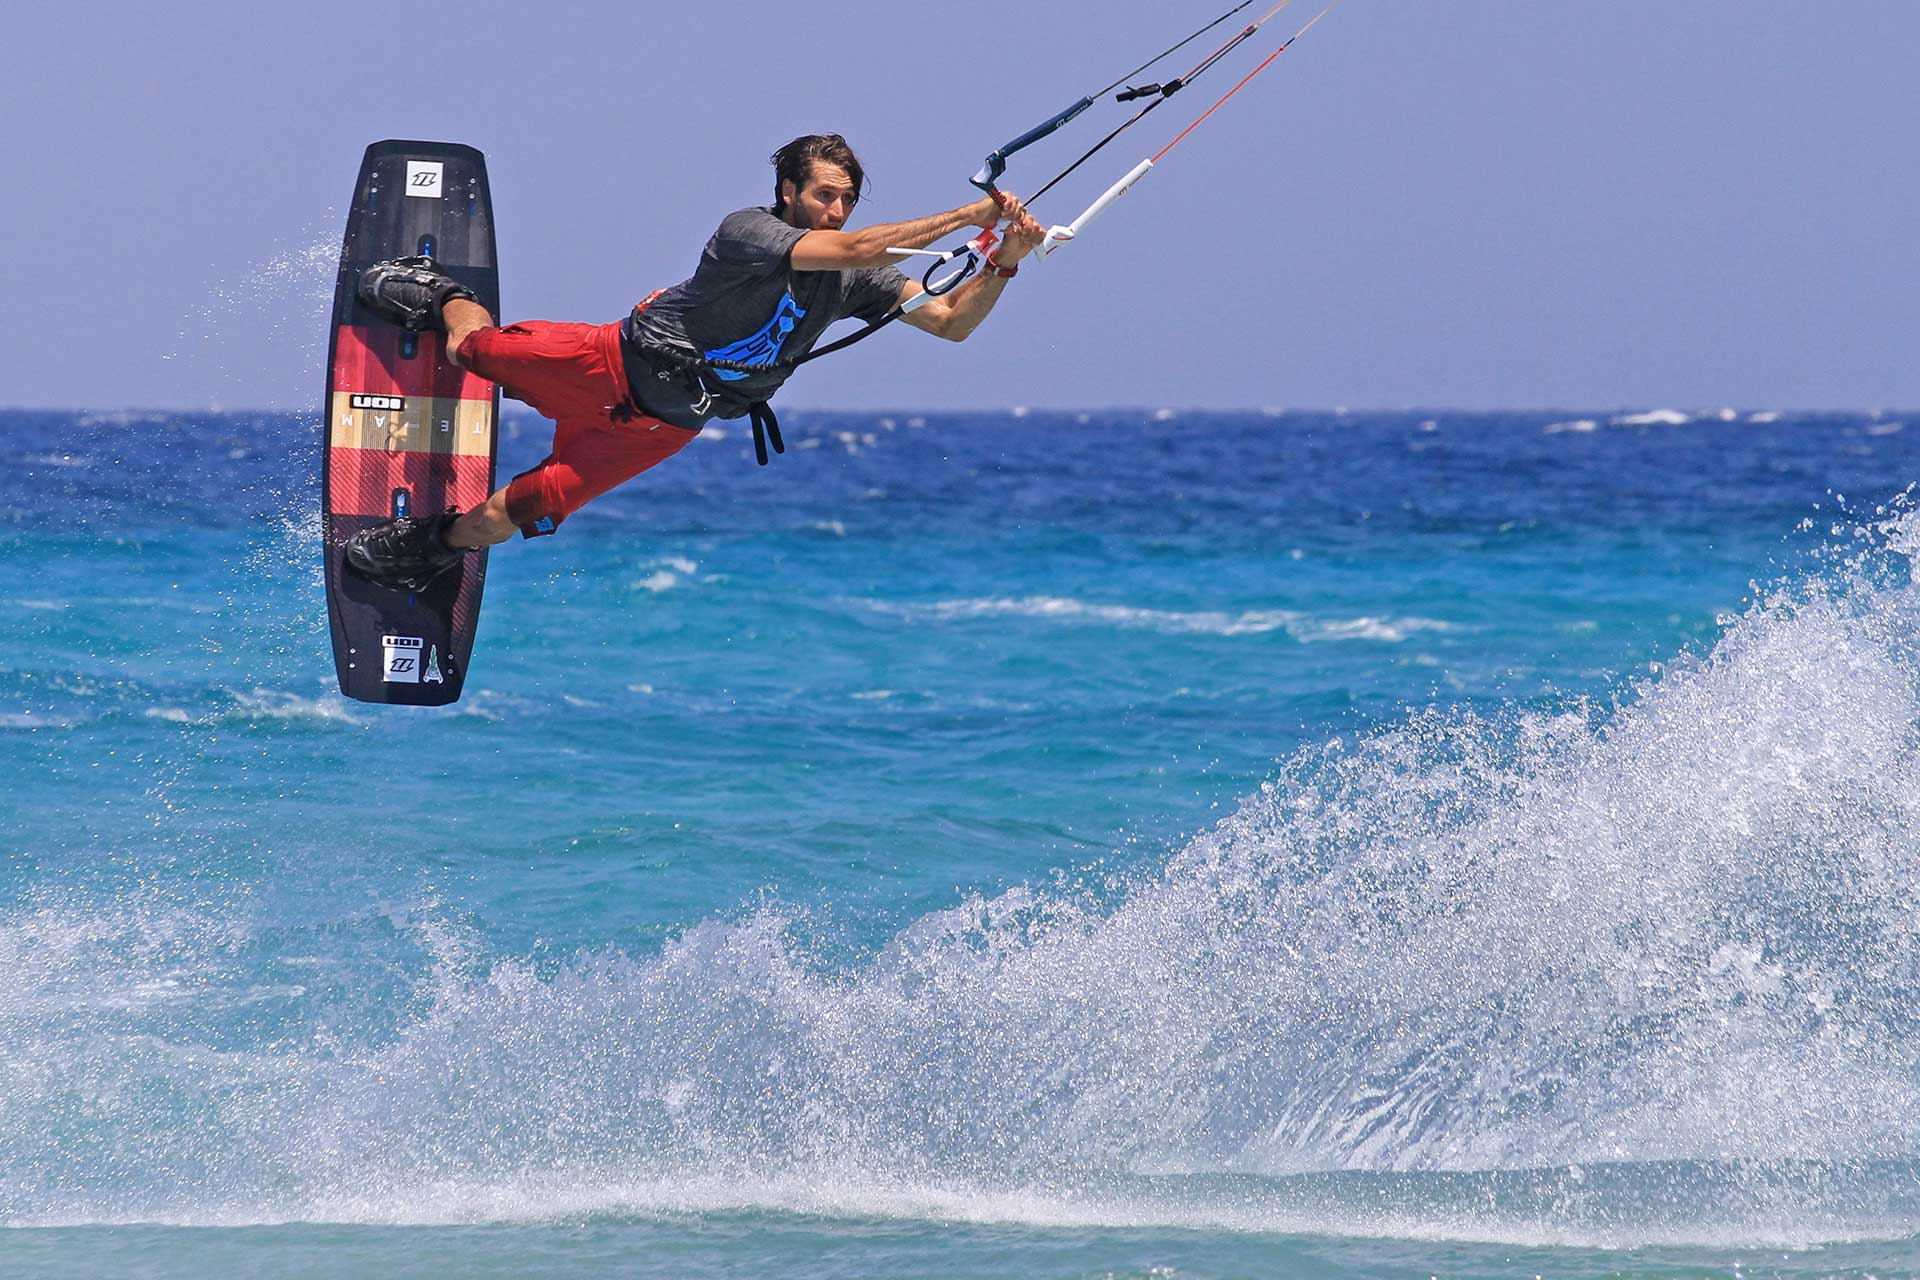 Emanuele Minutello kitesurf freestyle_01